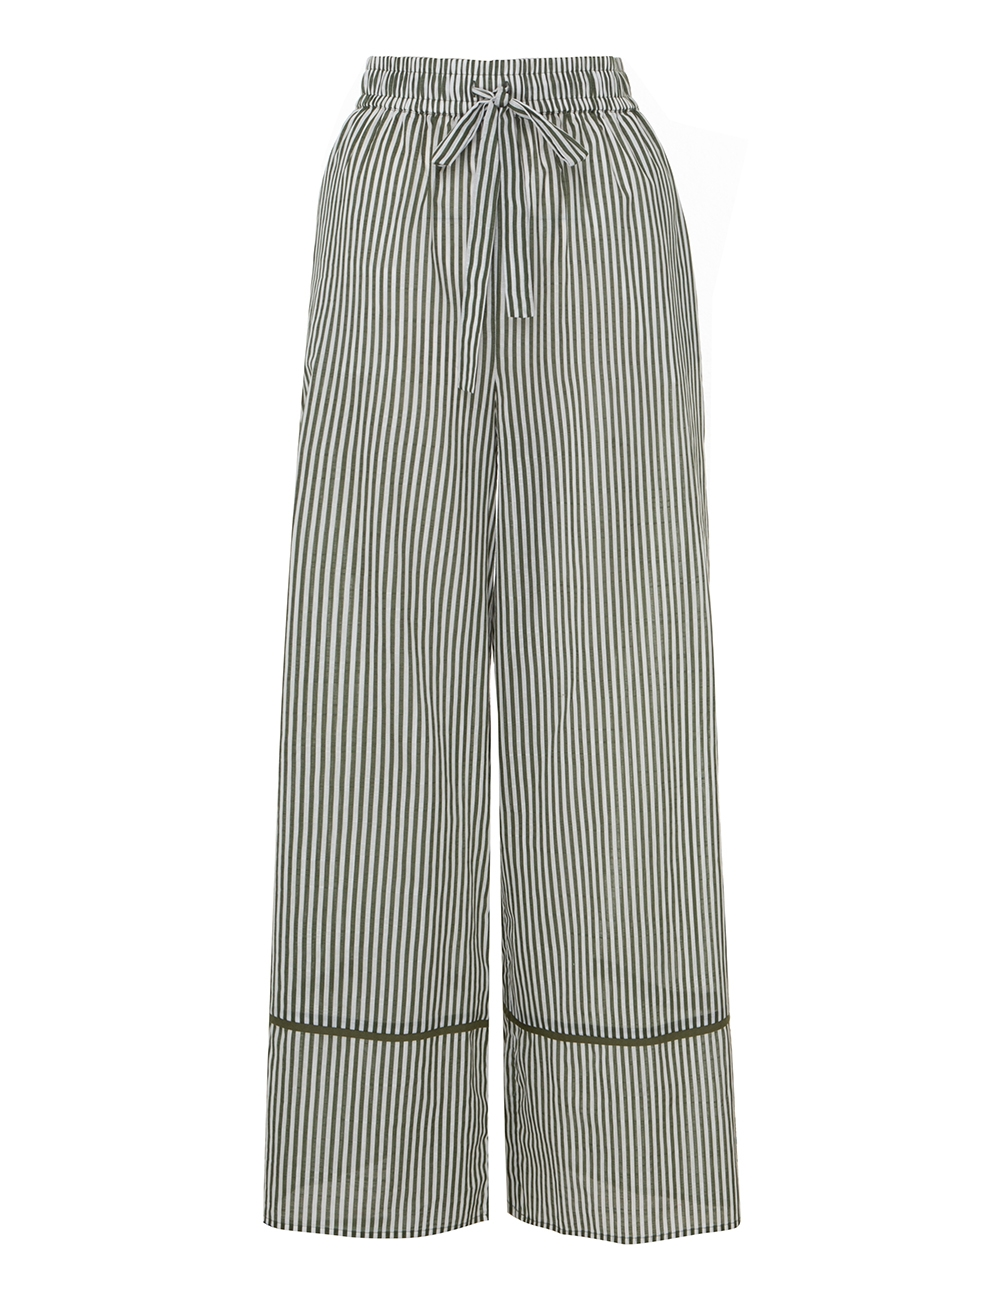 Empire Stripe Pant